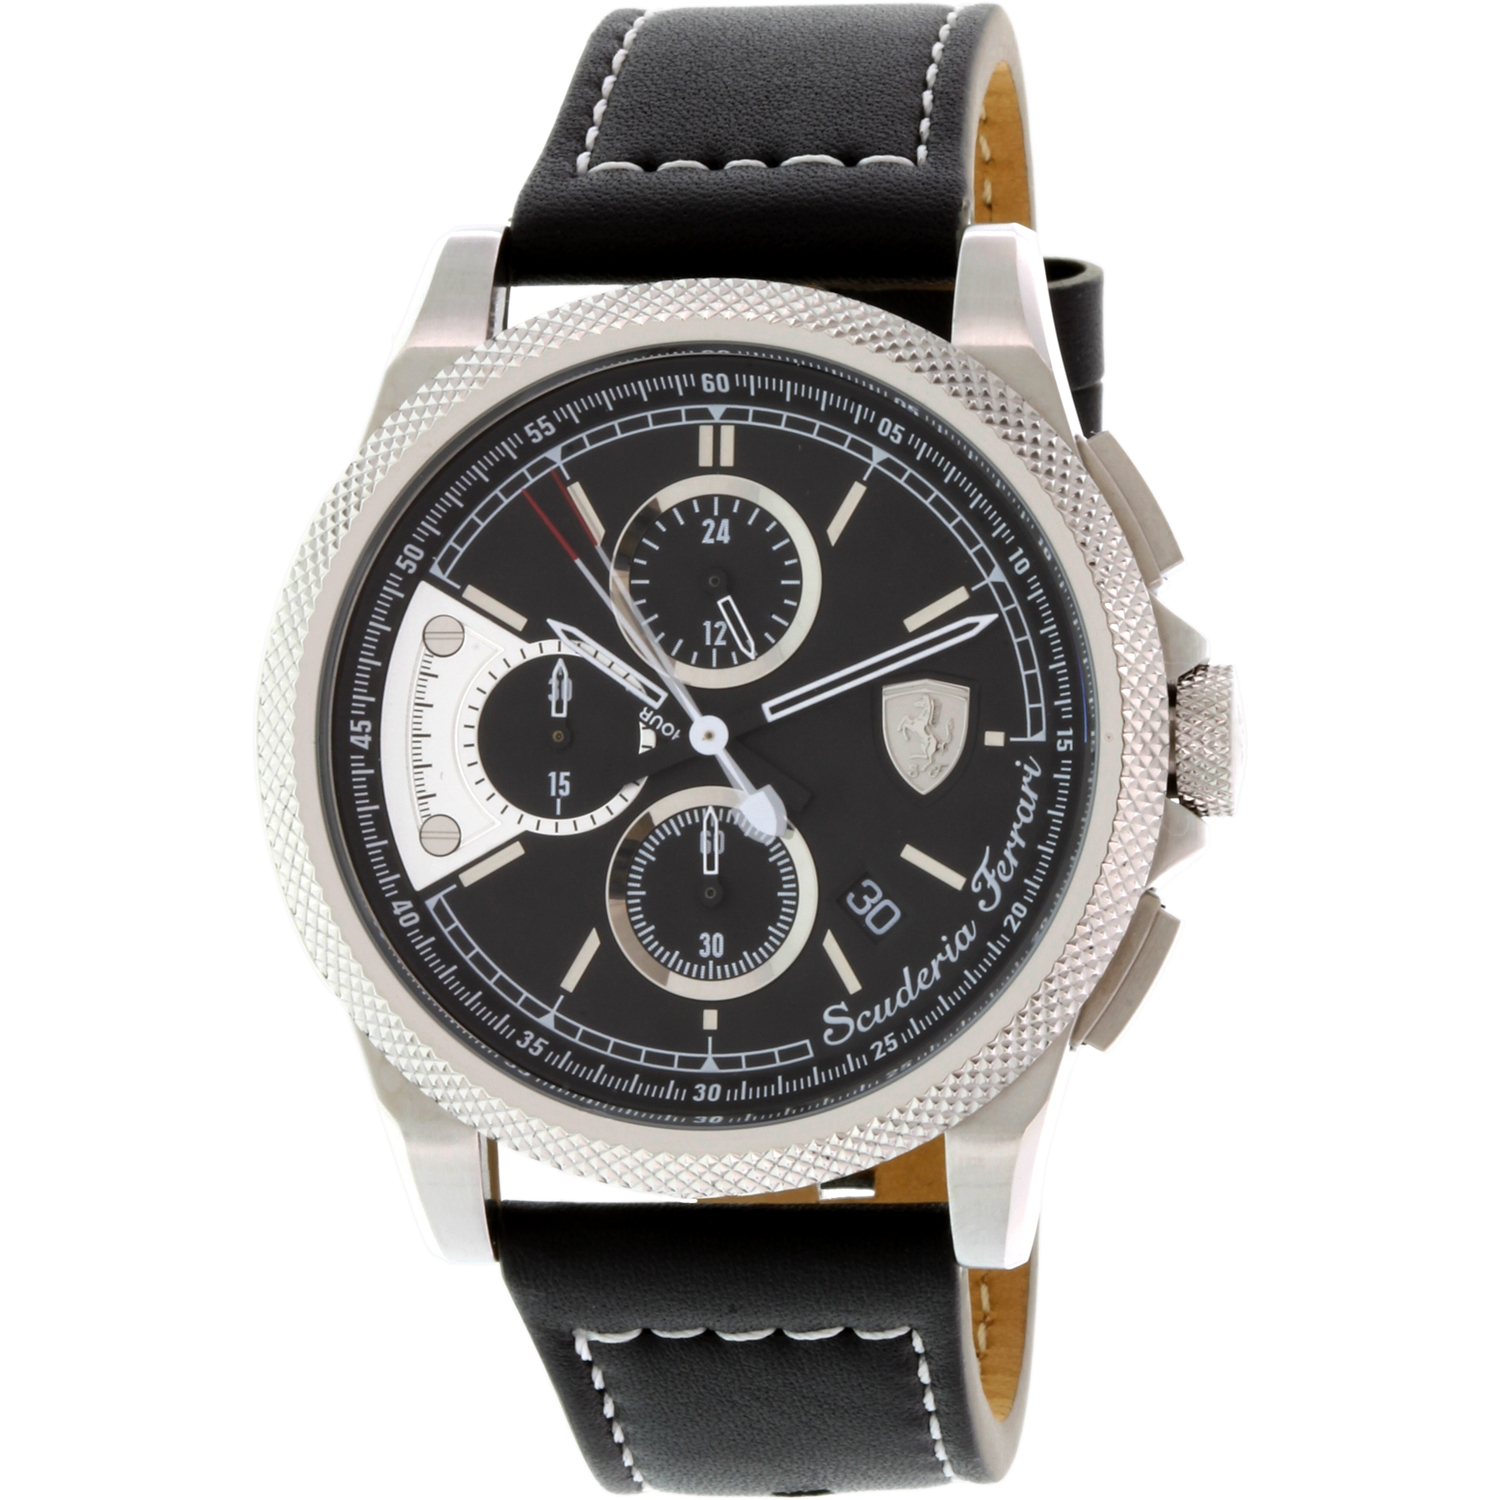 Ferrari Men's Formula Italia S 0830275 Black Leather Swiss Quartz Watch